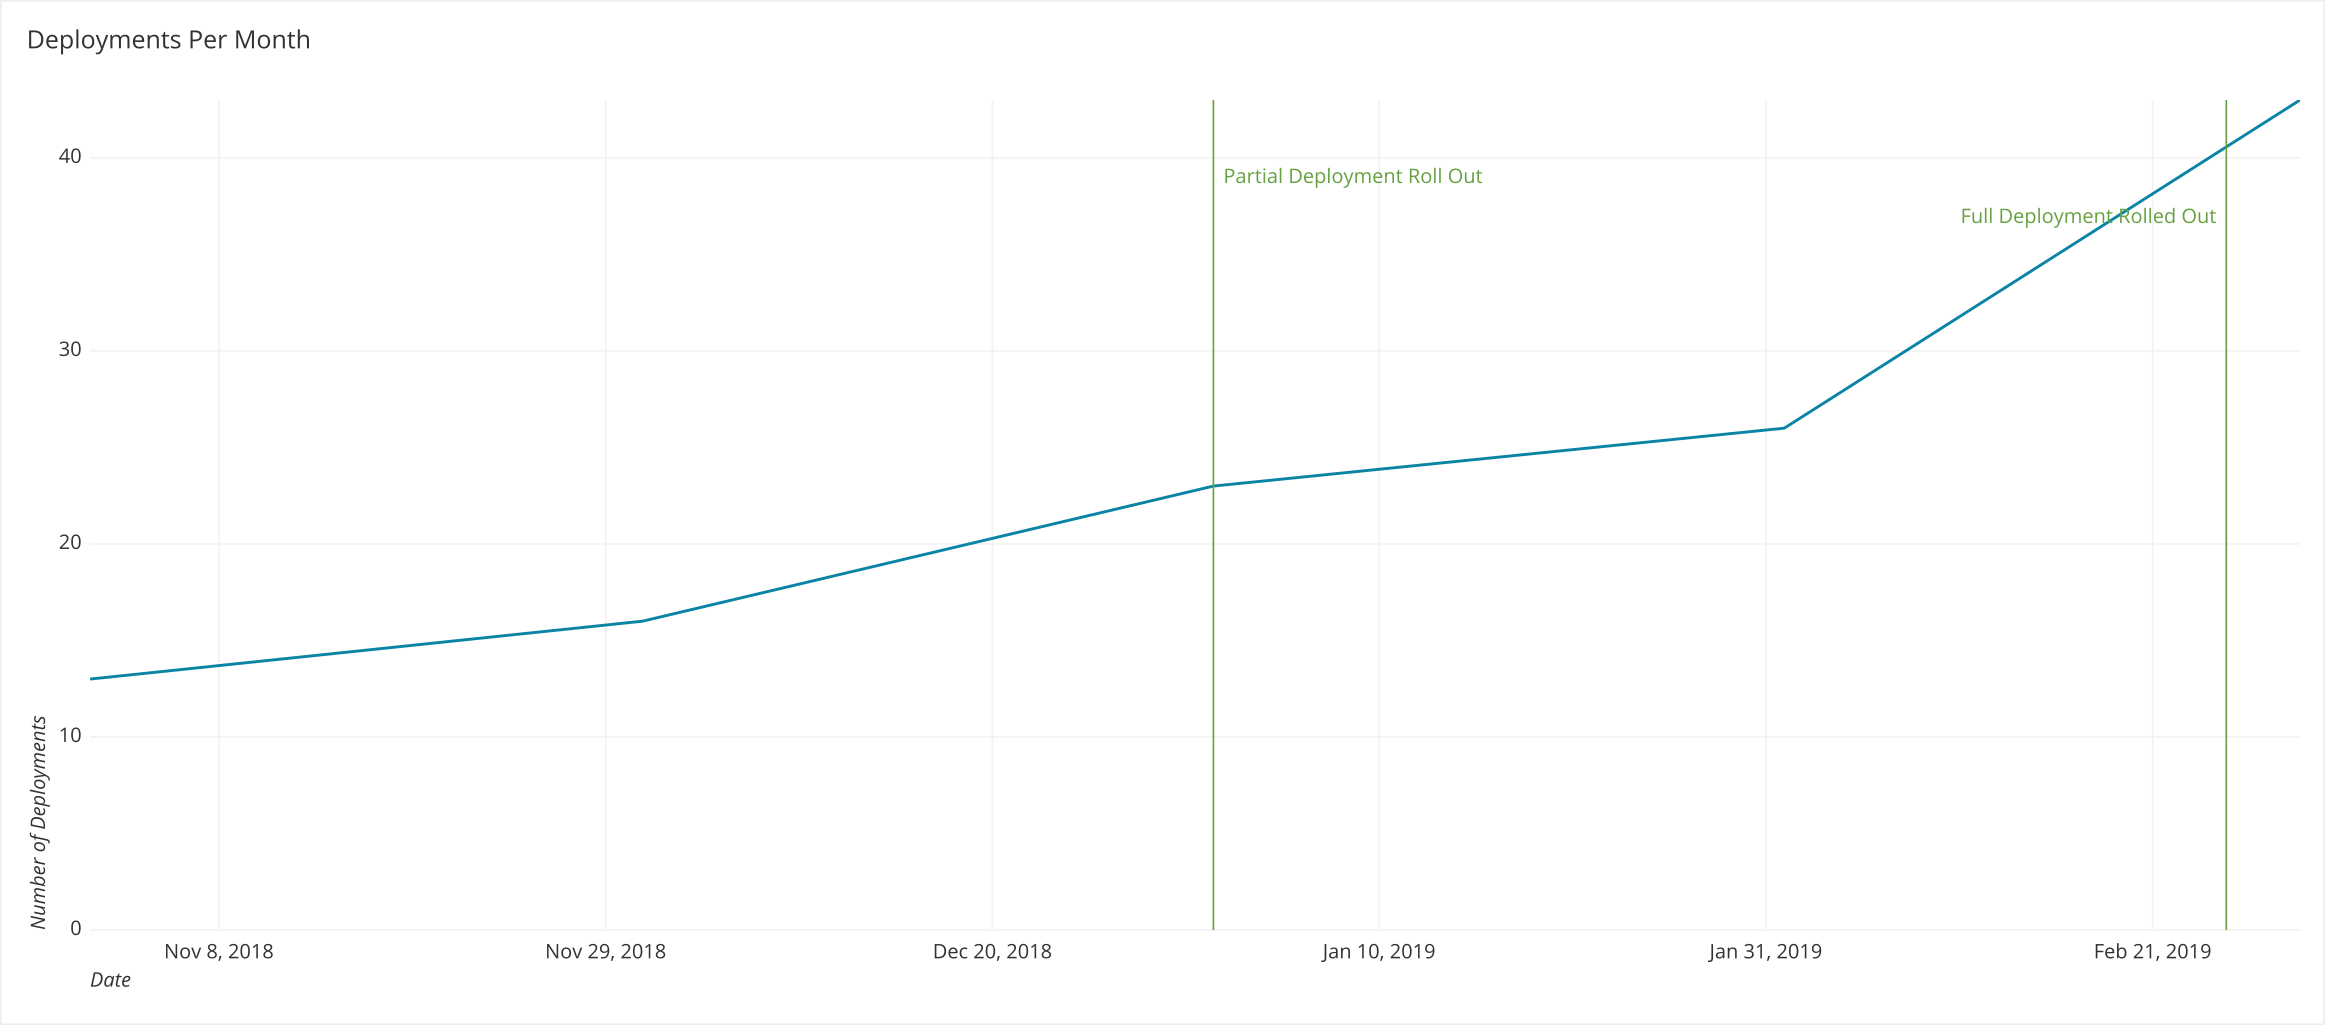 Chartio-deployments-per-month.png